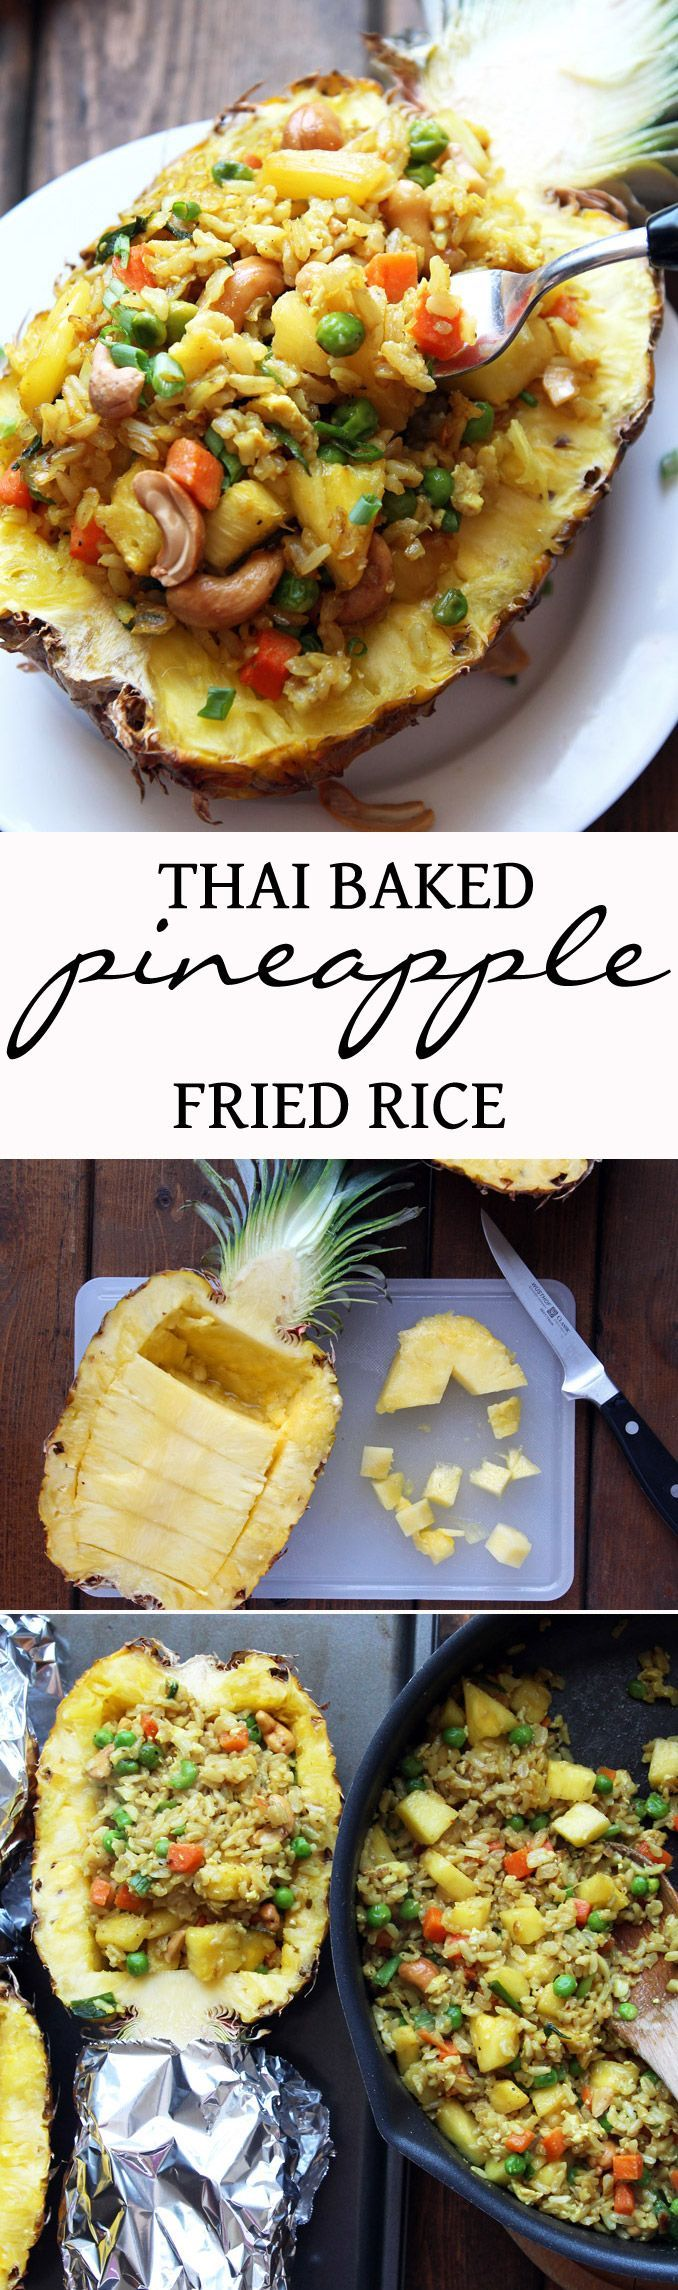 Romantic valentines meals at home - Thai Baked Pineapple Fried Rice Perfect For A Romantic Valentine S Dinner At Home